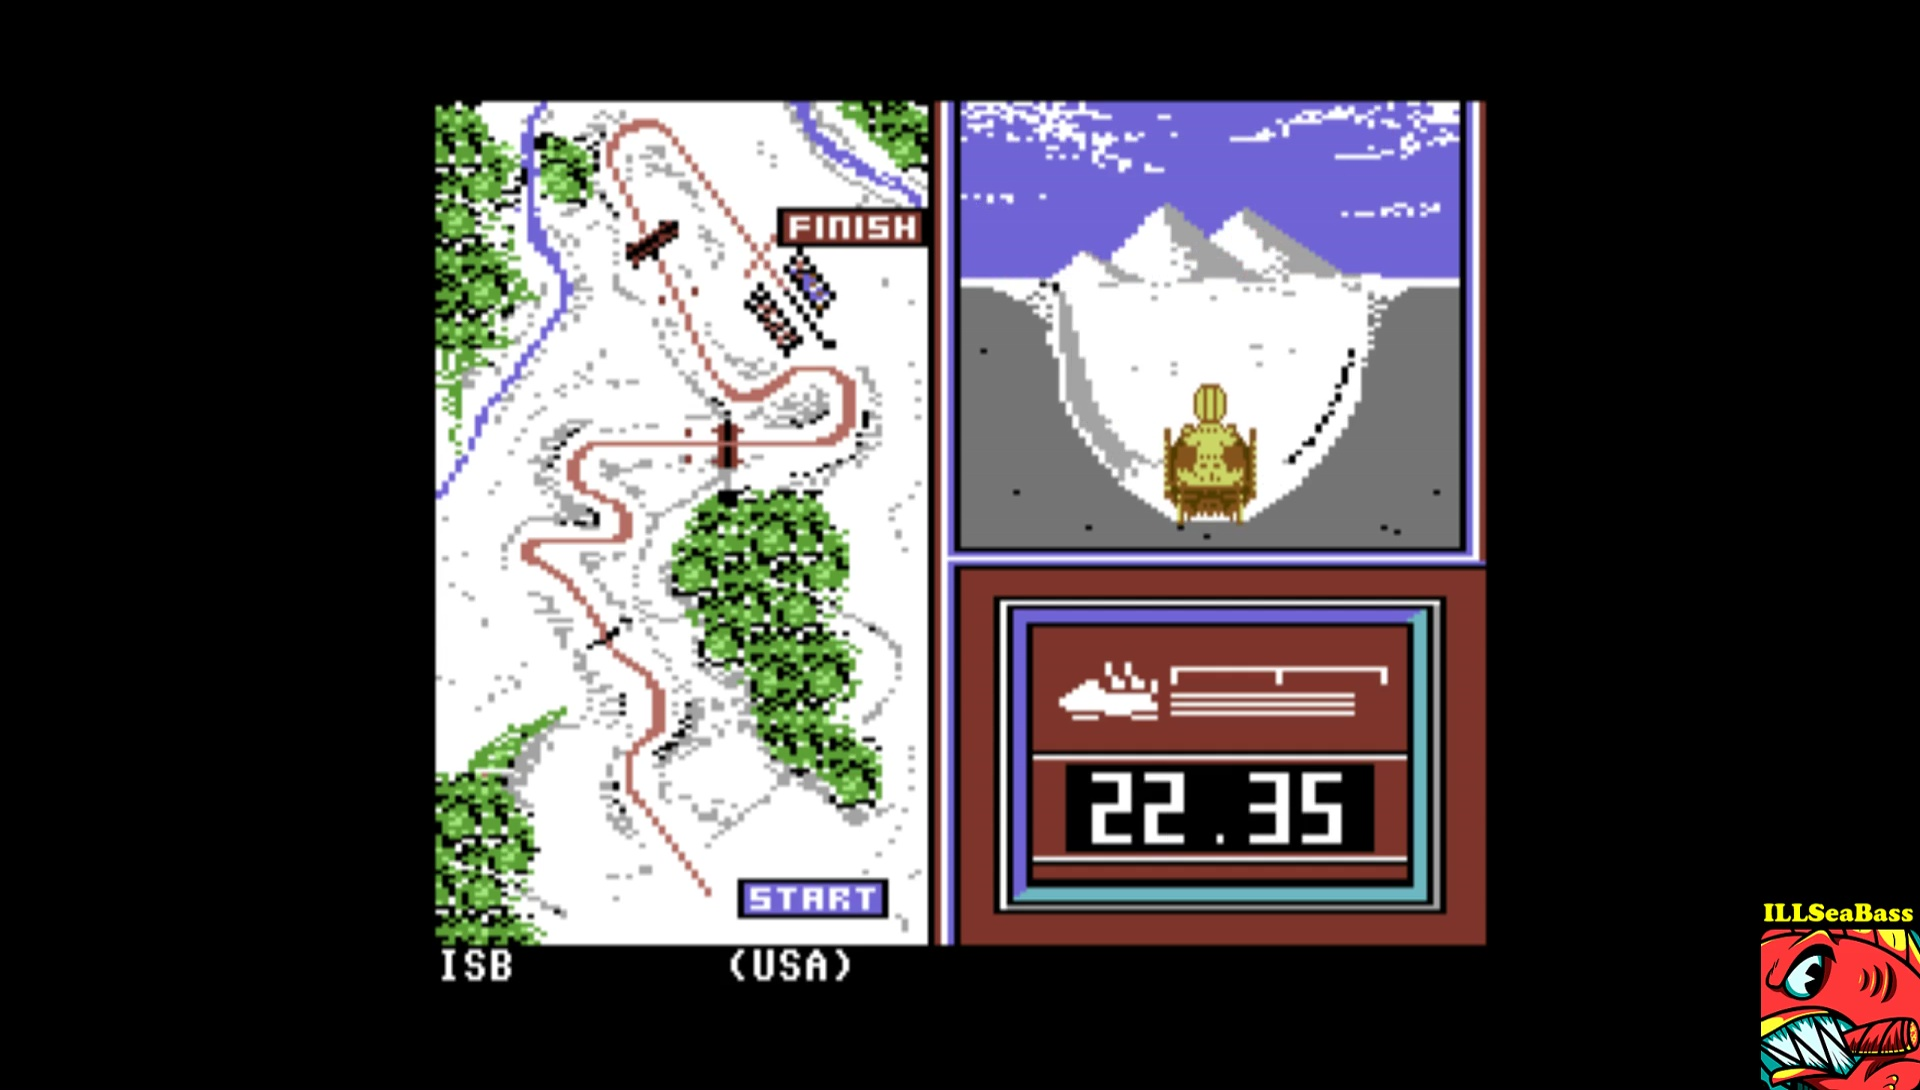 Winter Games: Bob Sled time of 0:00:22.35